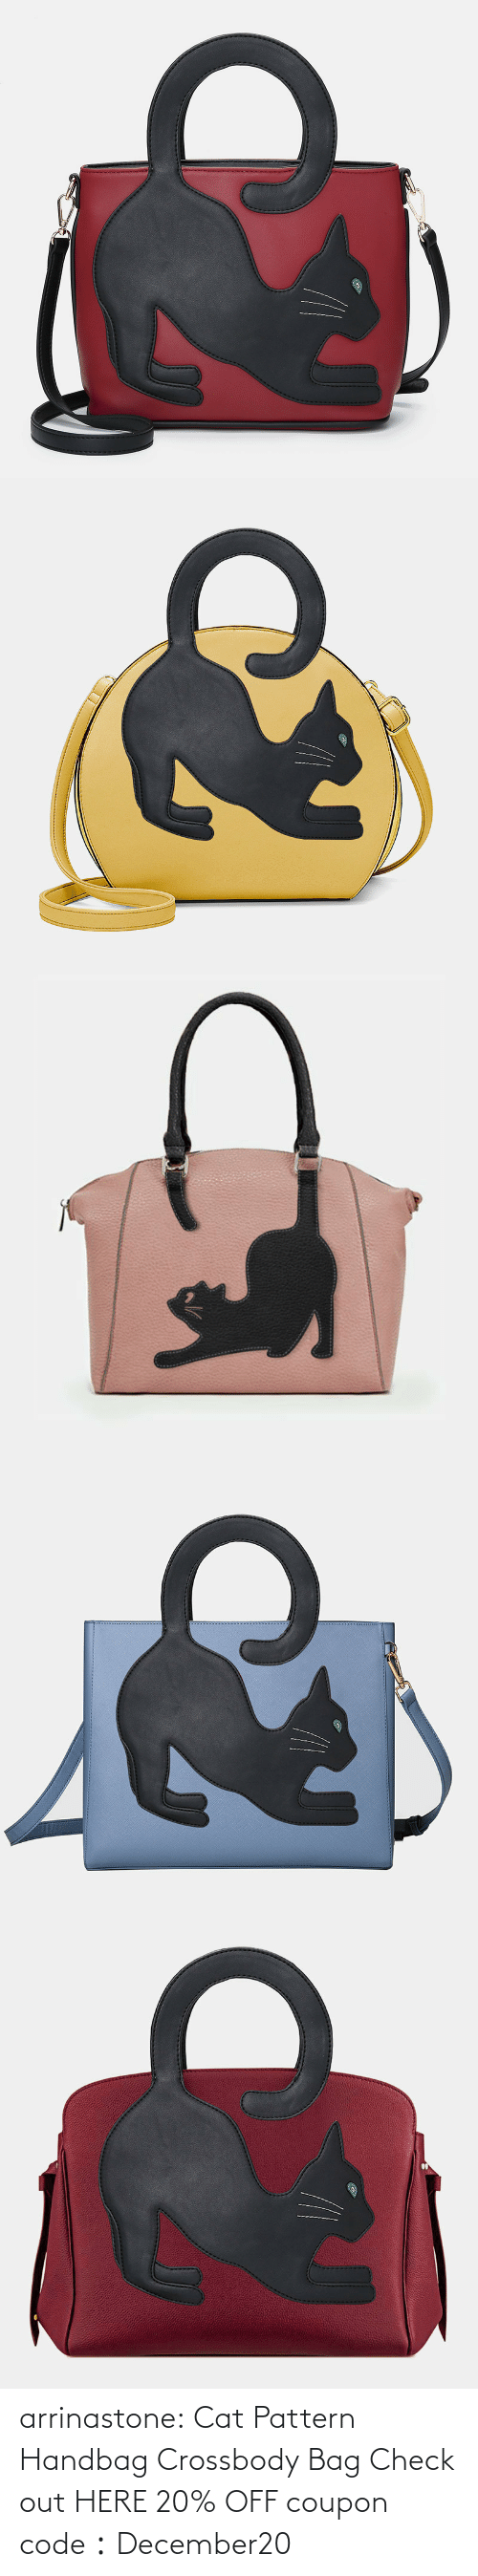 bit.ly: arrinastone: Cat Pattern Handbag Crossbody Bag Check out HERE 20% OFF coupon code:December20